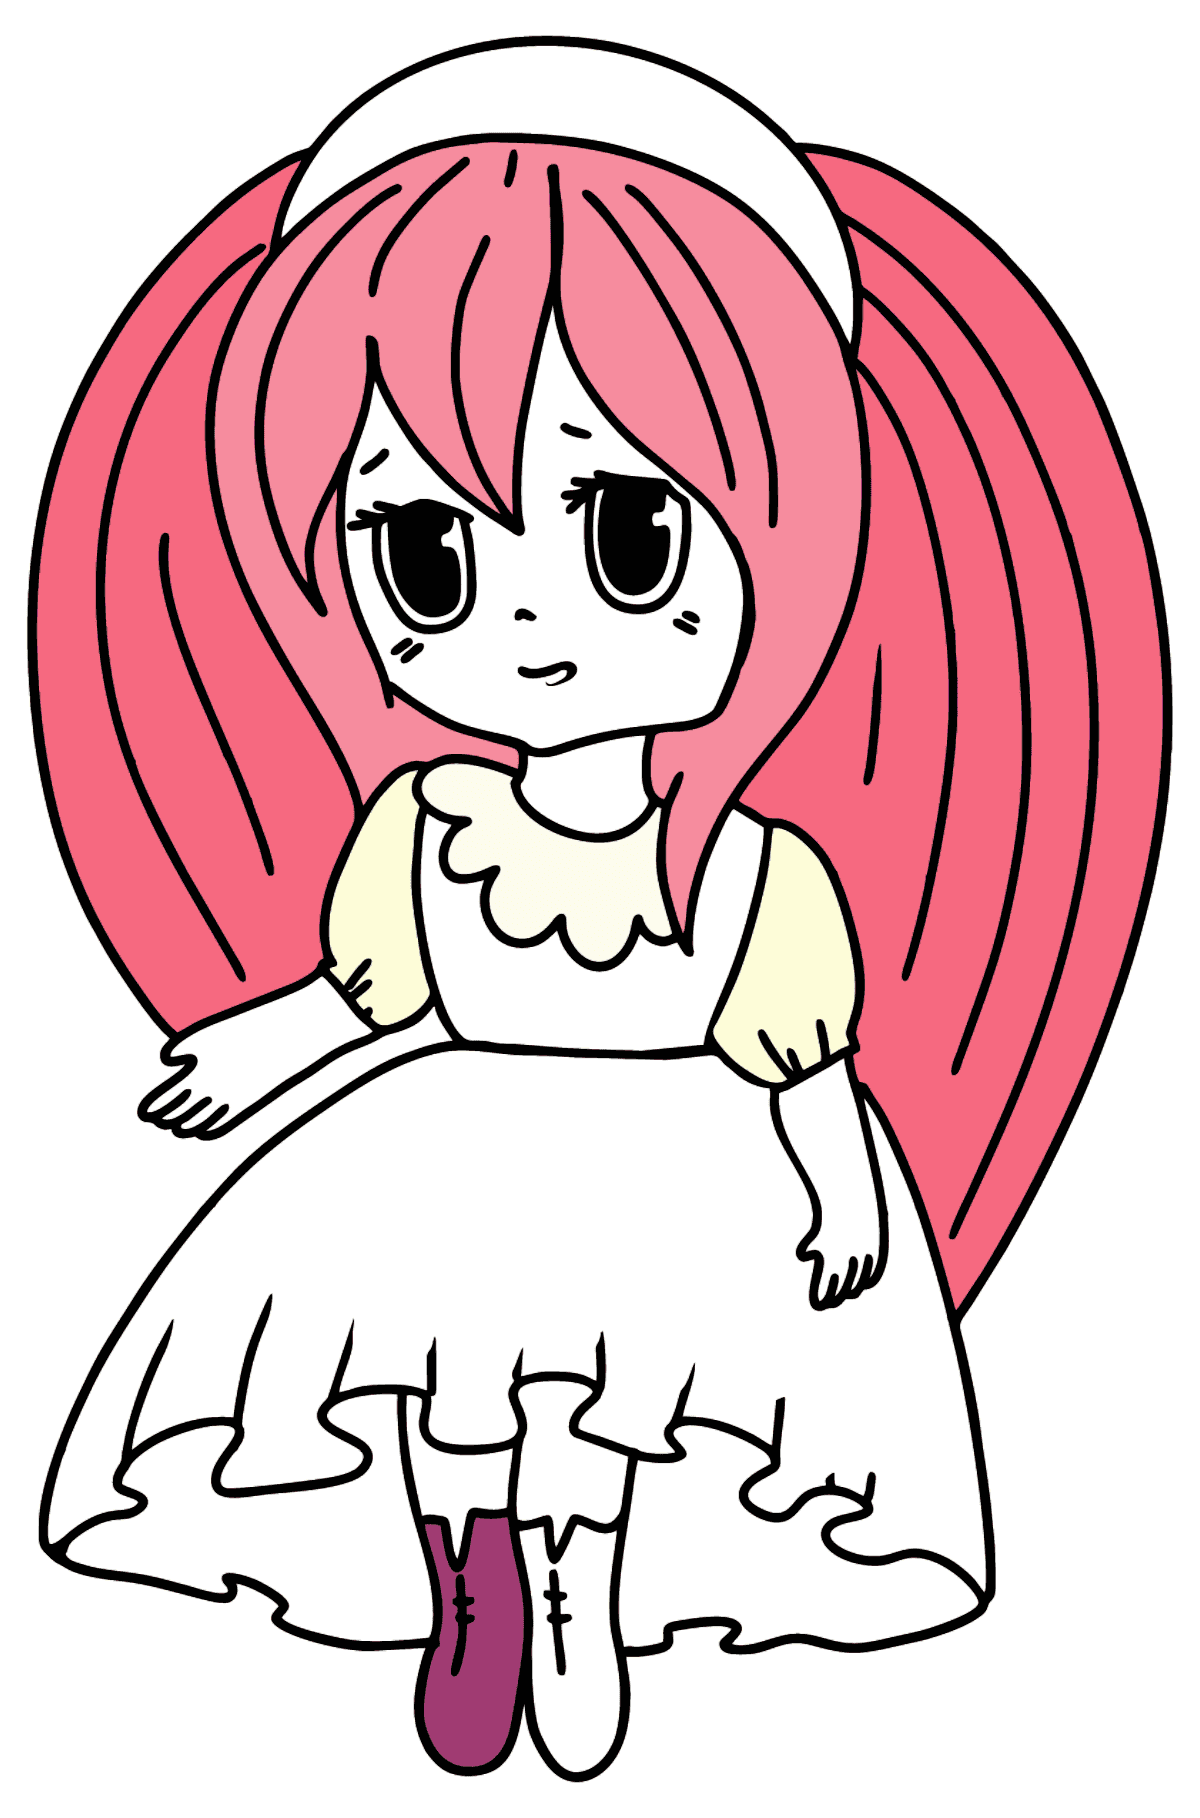 Anime Girl in Pink coloring page - Coloring Pages for Kids